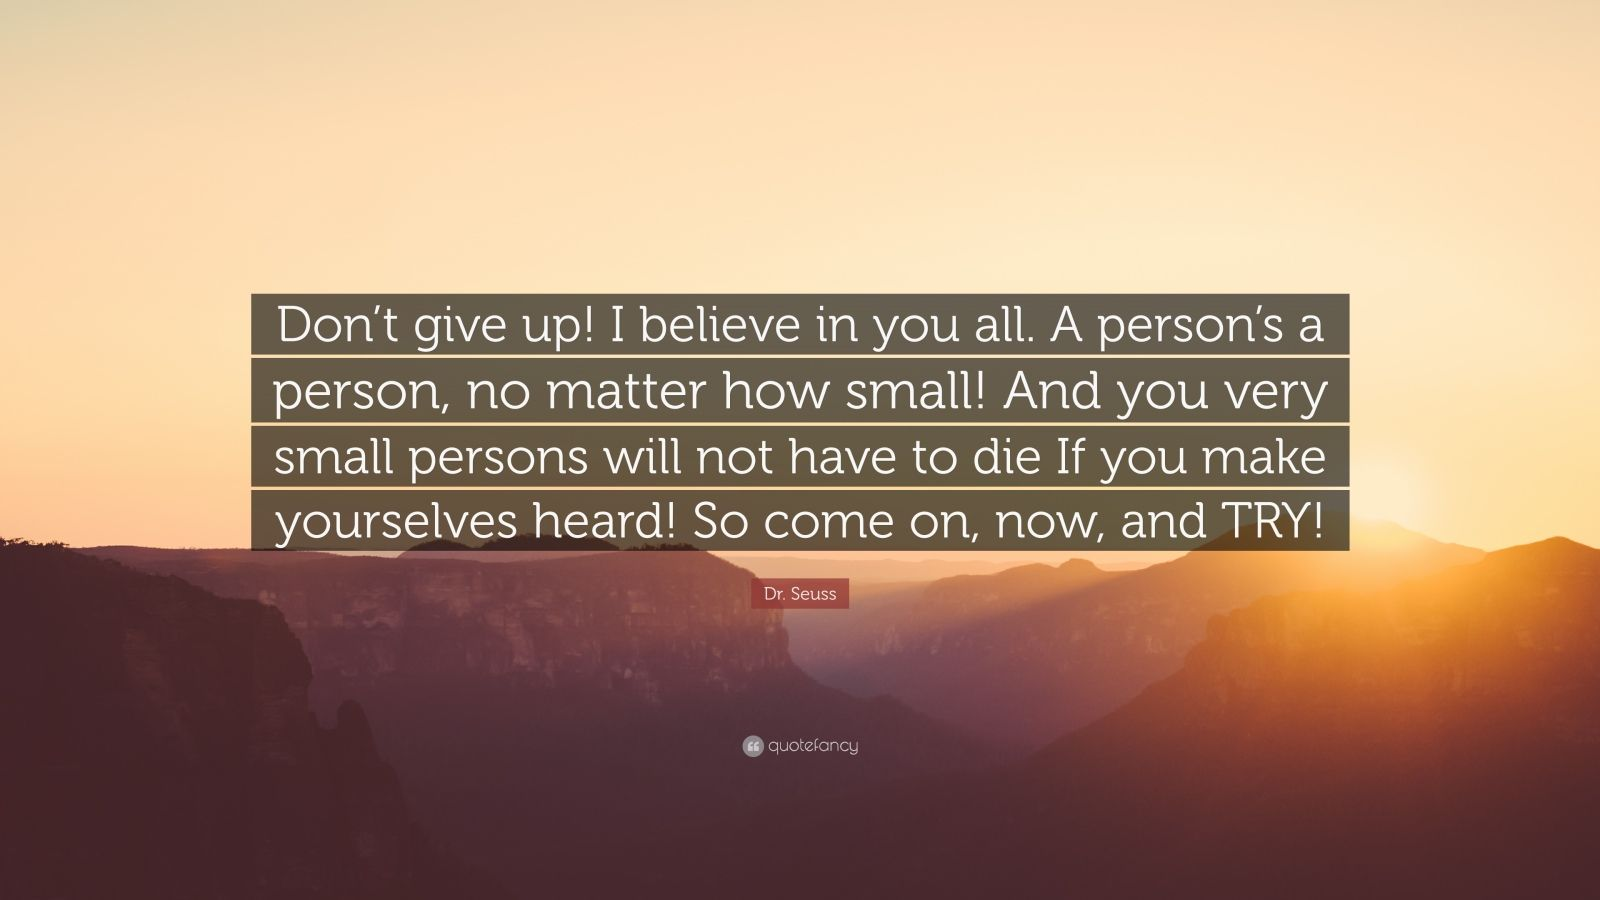 """Dr. Seuss Quote: """"Don't give up! I believe in you all. A person's a person, no matter how small! And you very small persons will not have to die If you make yourselves heard! So come on, now, and TRY!"""""""